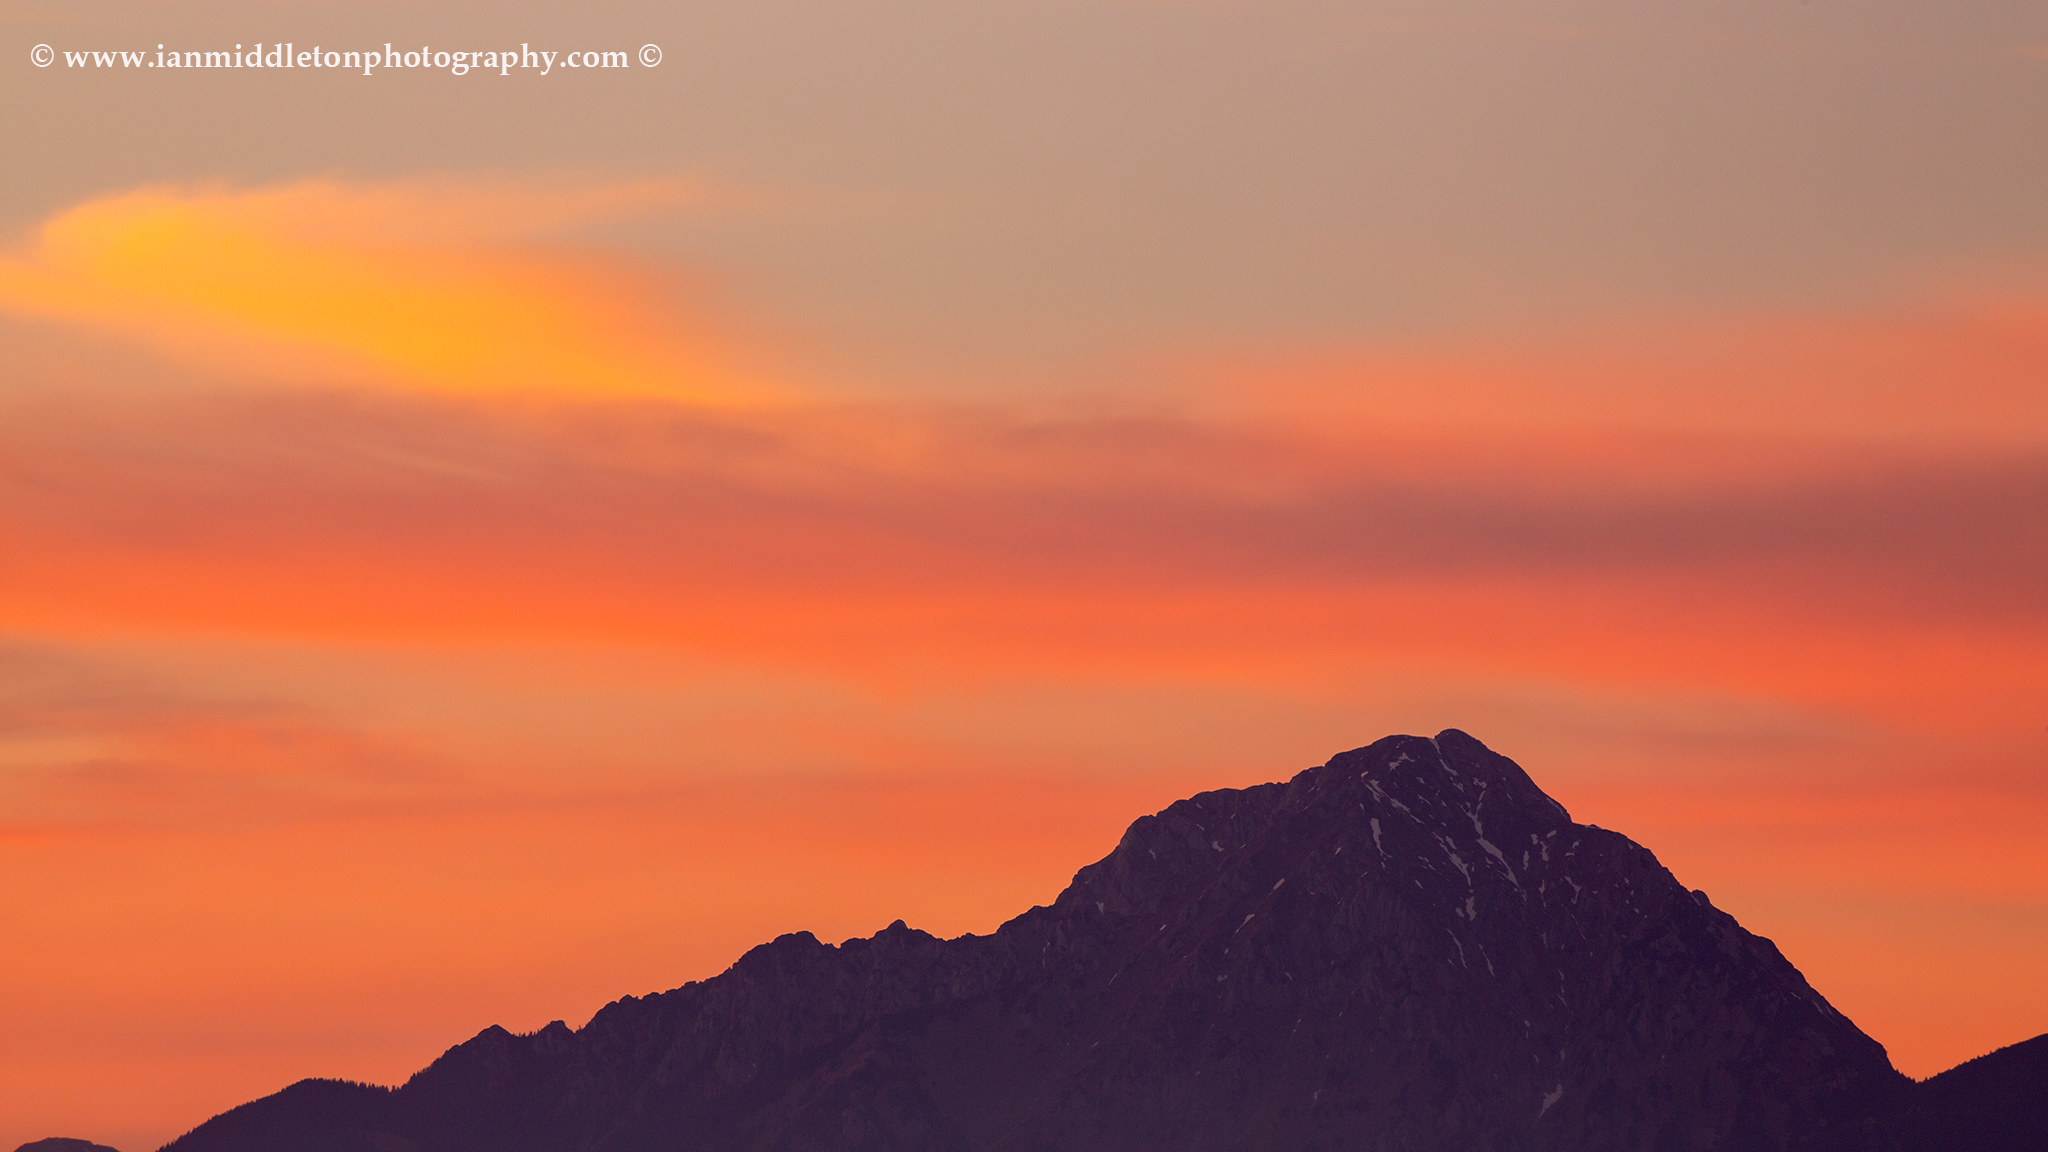 View of Storzic mountain, part of the Kamnik Alps, at sunset Slovenia.